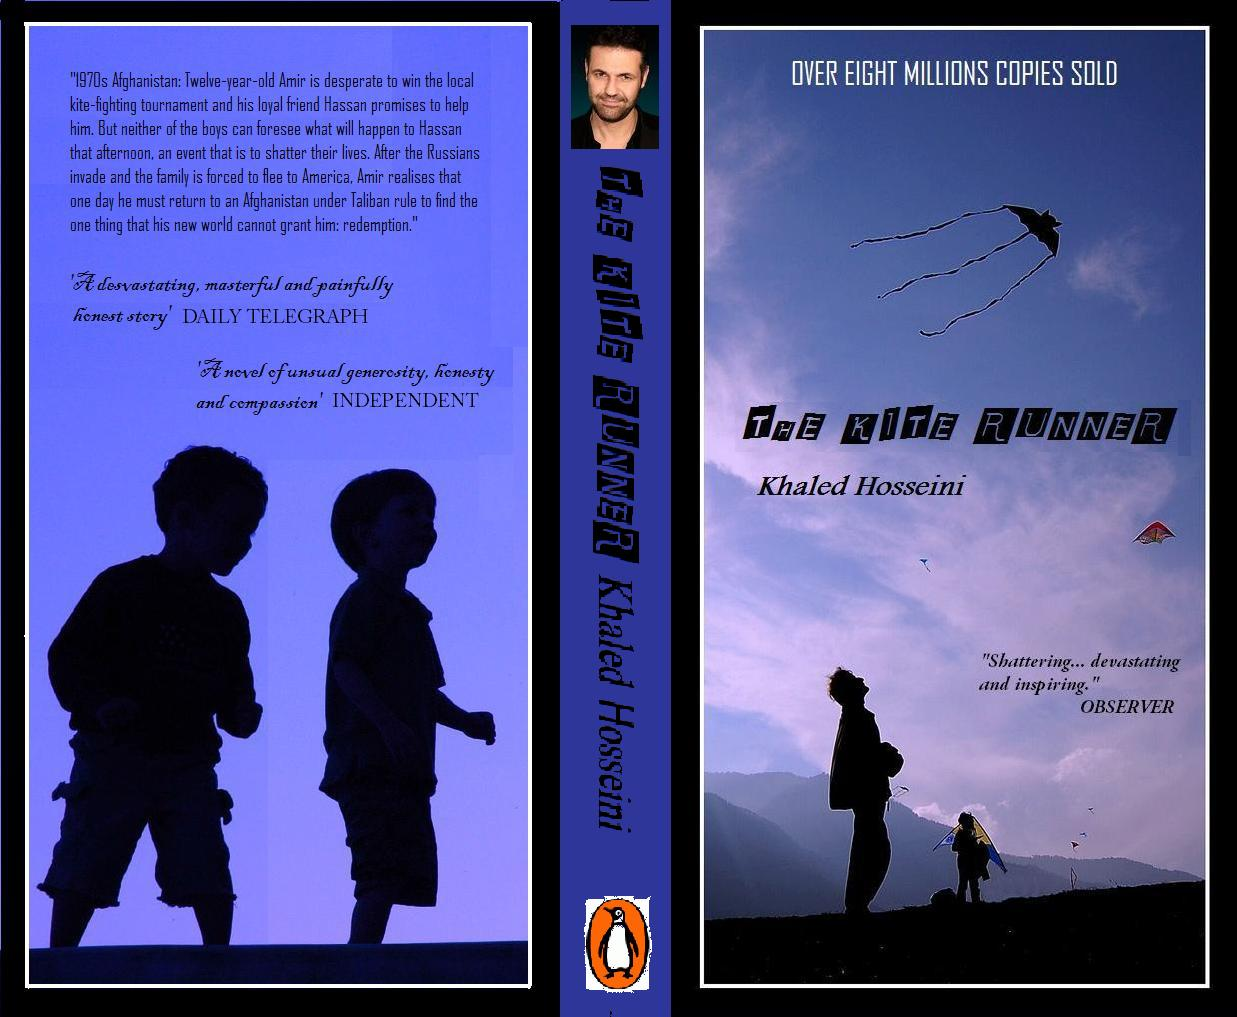 004 Essay Example Kite Runner Book Cover2 The Shocking Betrayal And Redemption Full